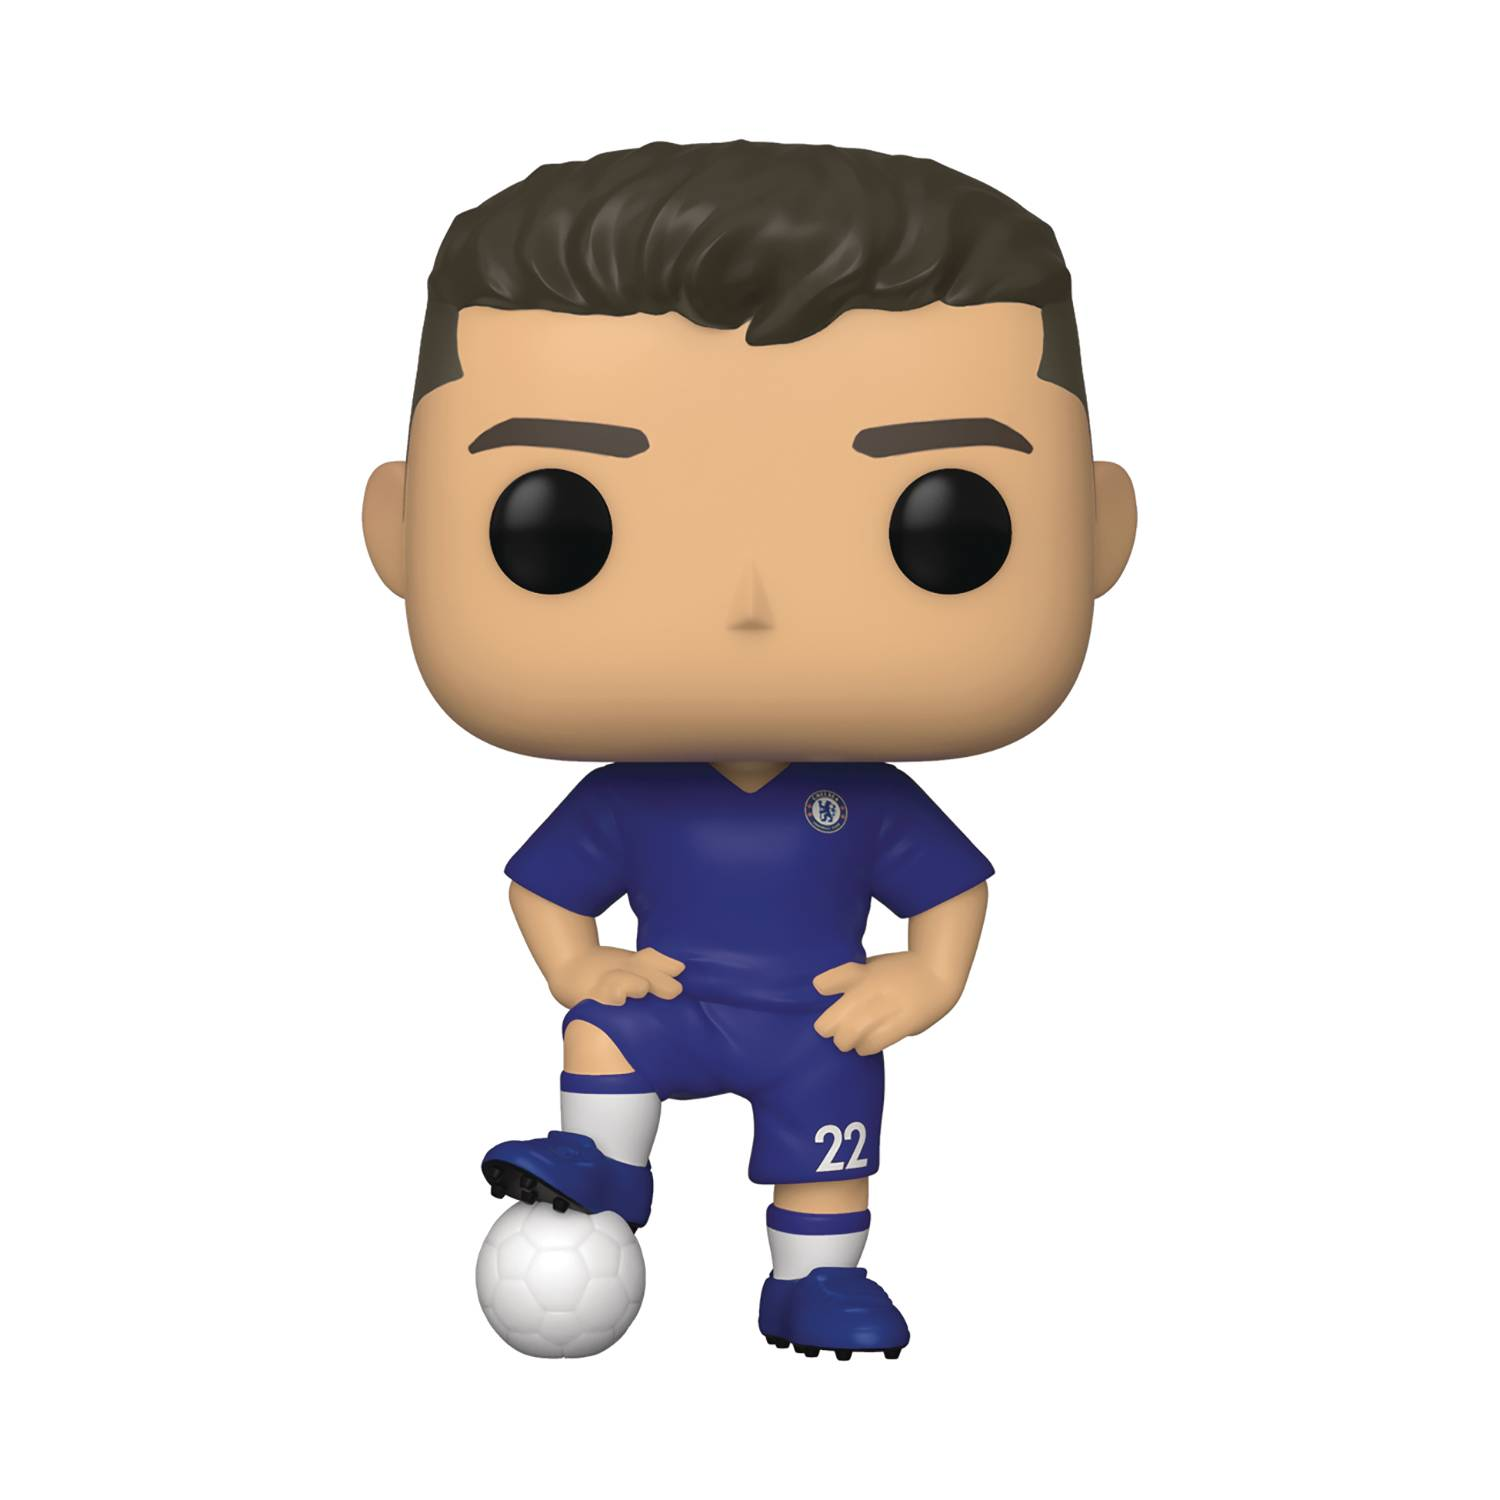 POP PREMIERE LEAGUE FOOTBALL CHELSEA CHRISTIAN PULISIC FIG (